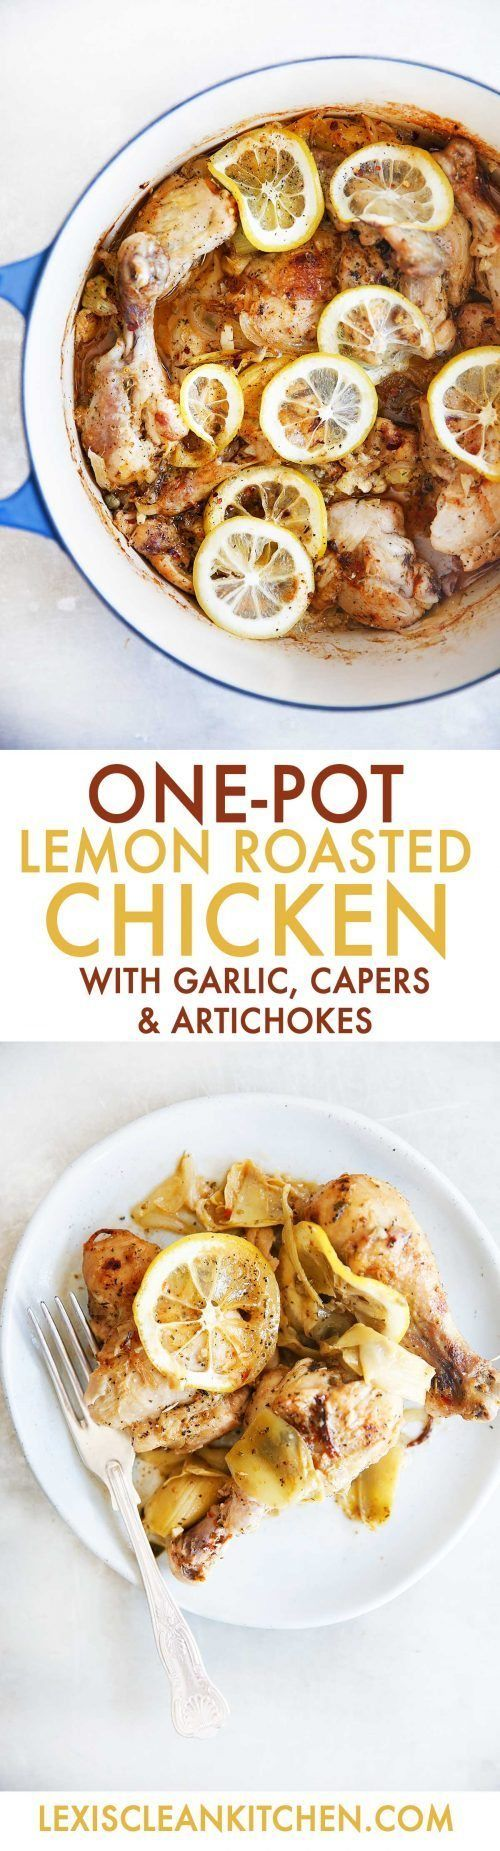 One-Pot Lemon Roasted Chicken with Garlic, Capers, and Artichokes - Lexi's Clean Kitchen